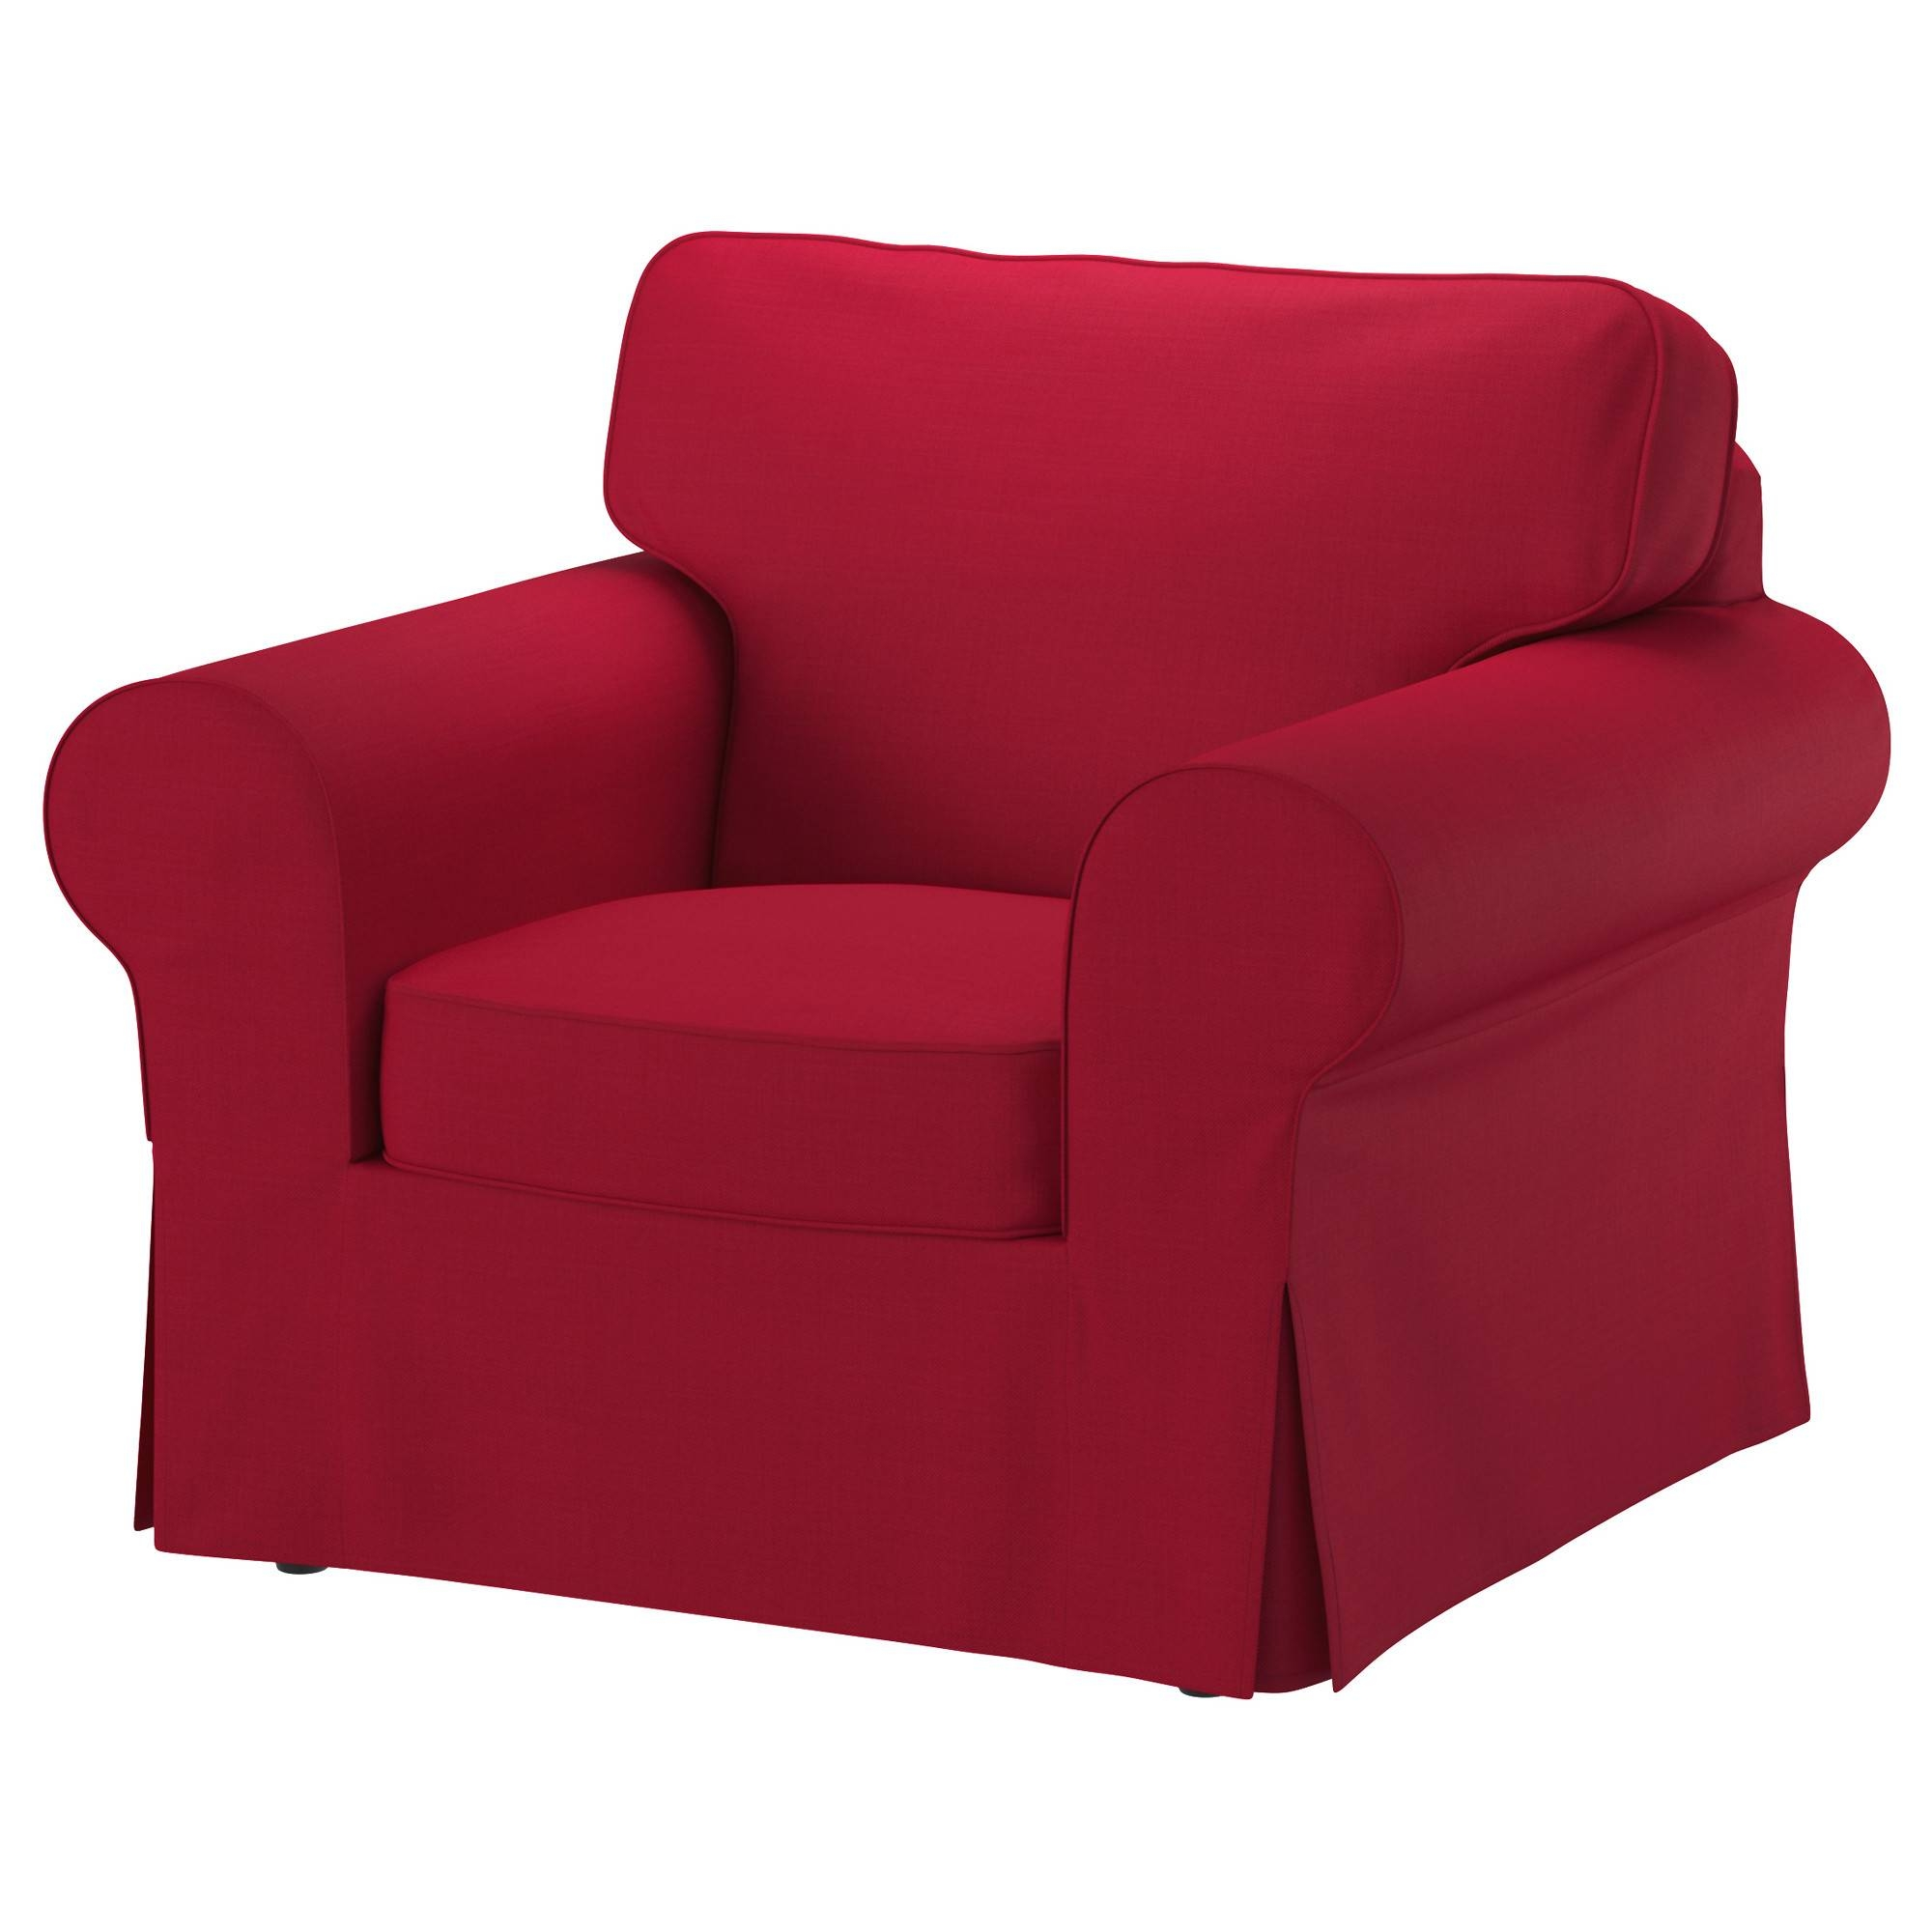 Sofas Center : Covers For Sofas And Chairs Sectional With throughout Covers For Sofas And Chairs (Image 12 of 15)